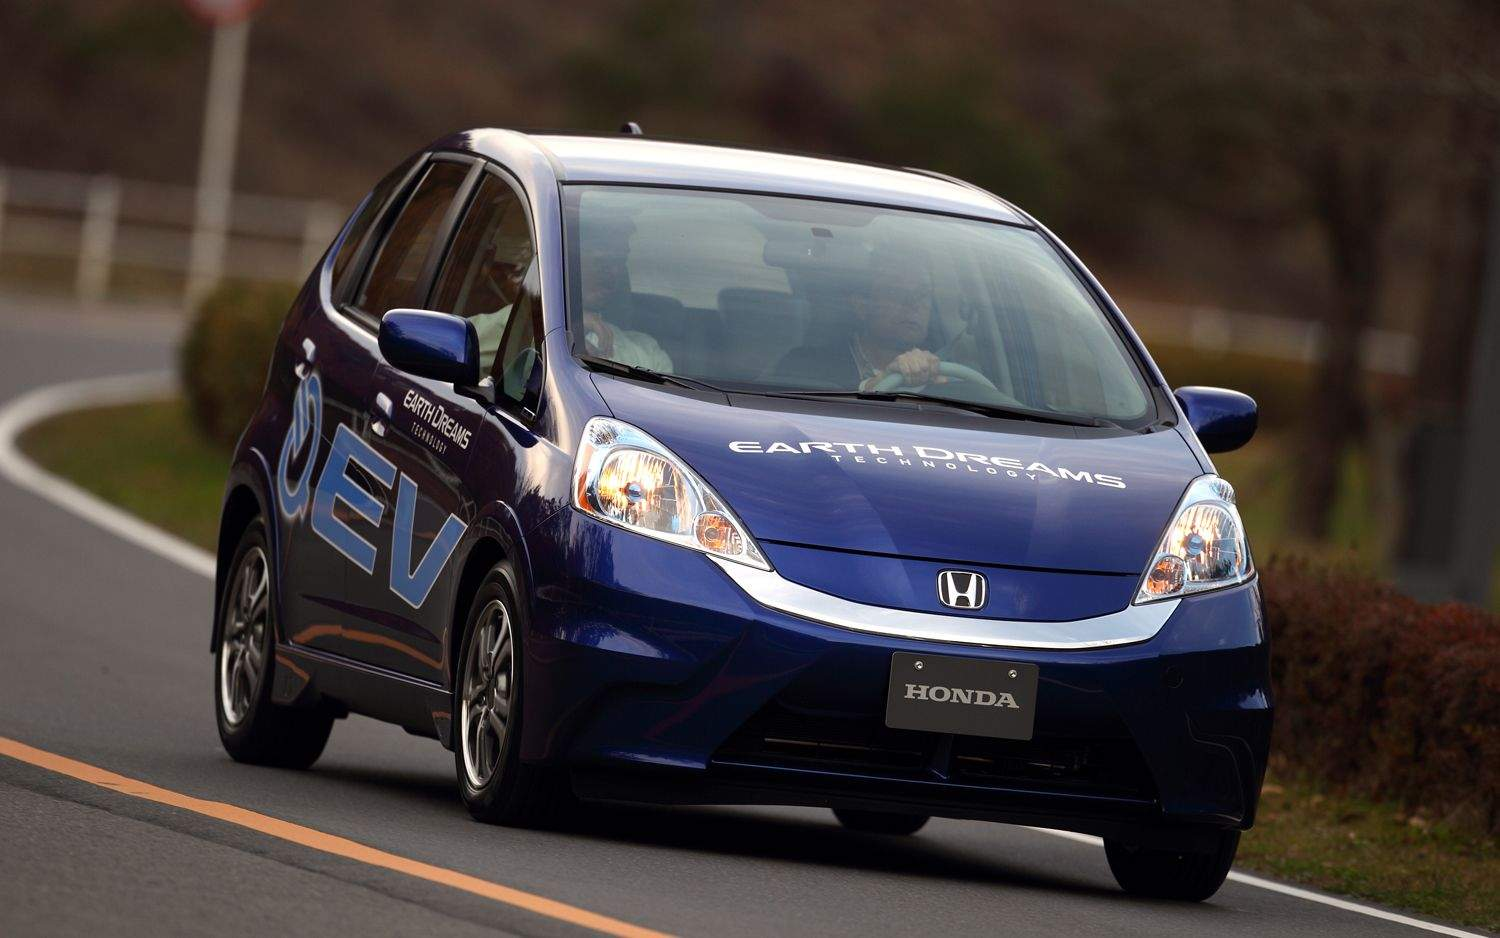 2013 honda fit ev review price the list of cars. Black Bedroom Furniture Sets. Home Design Ideas